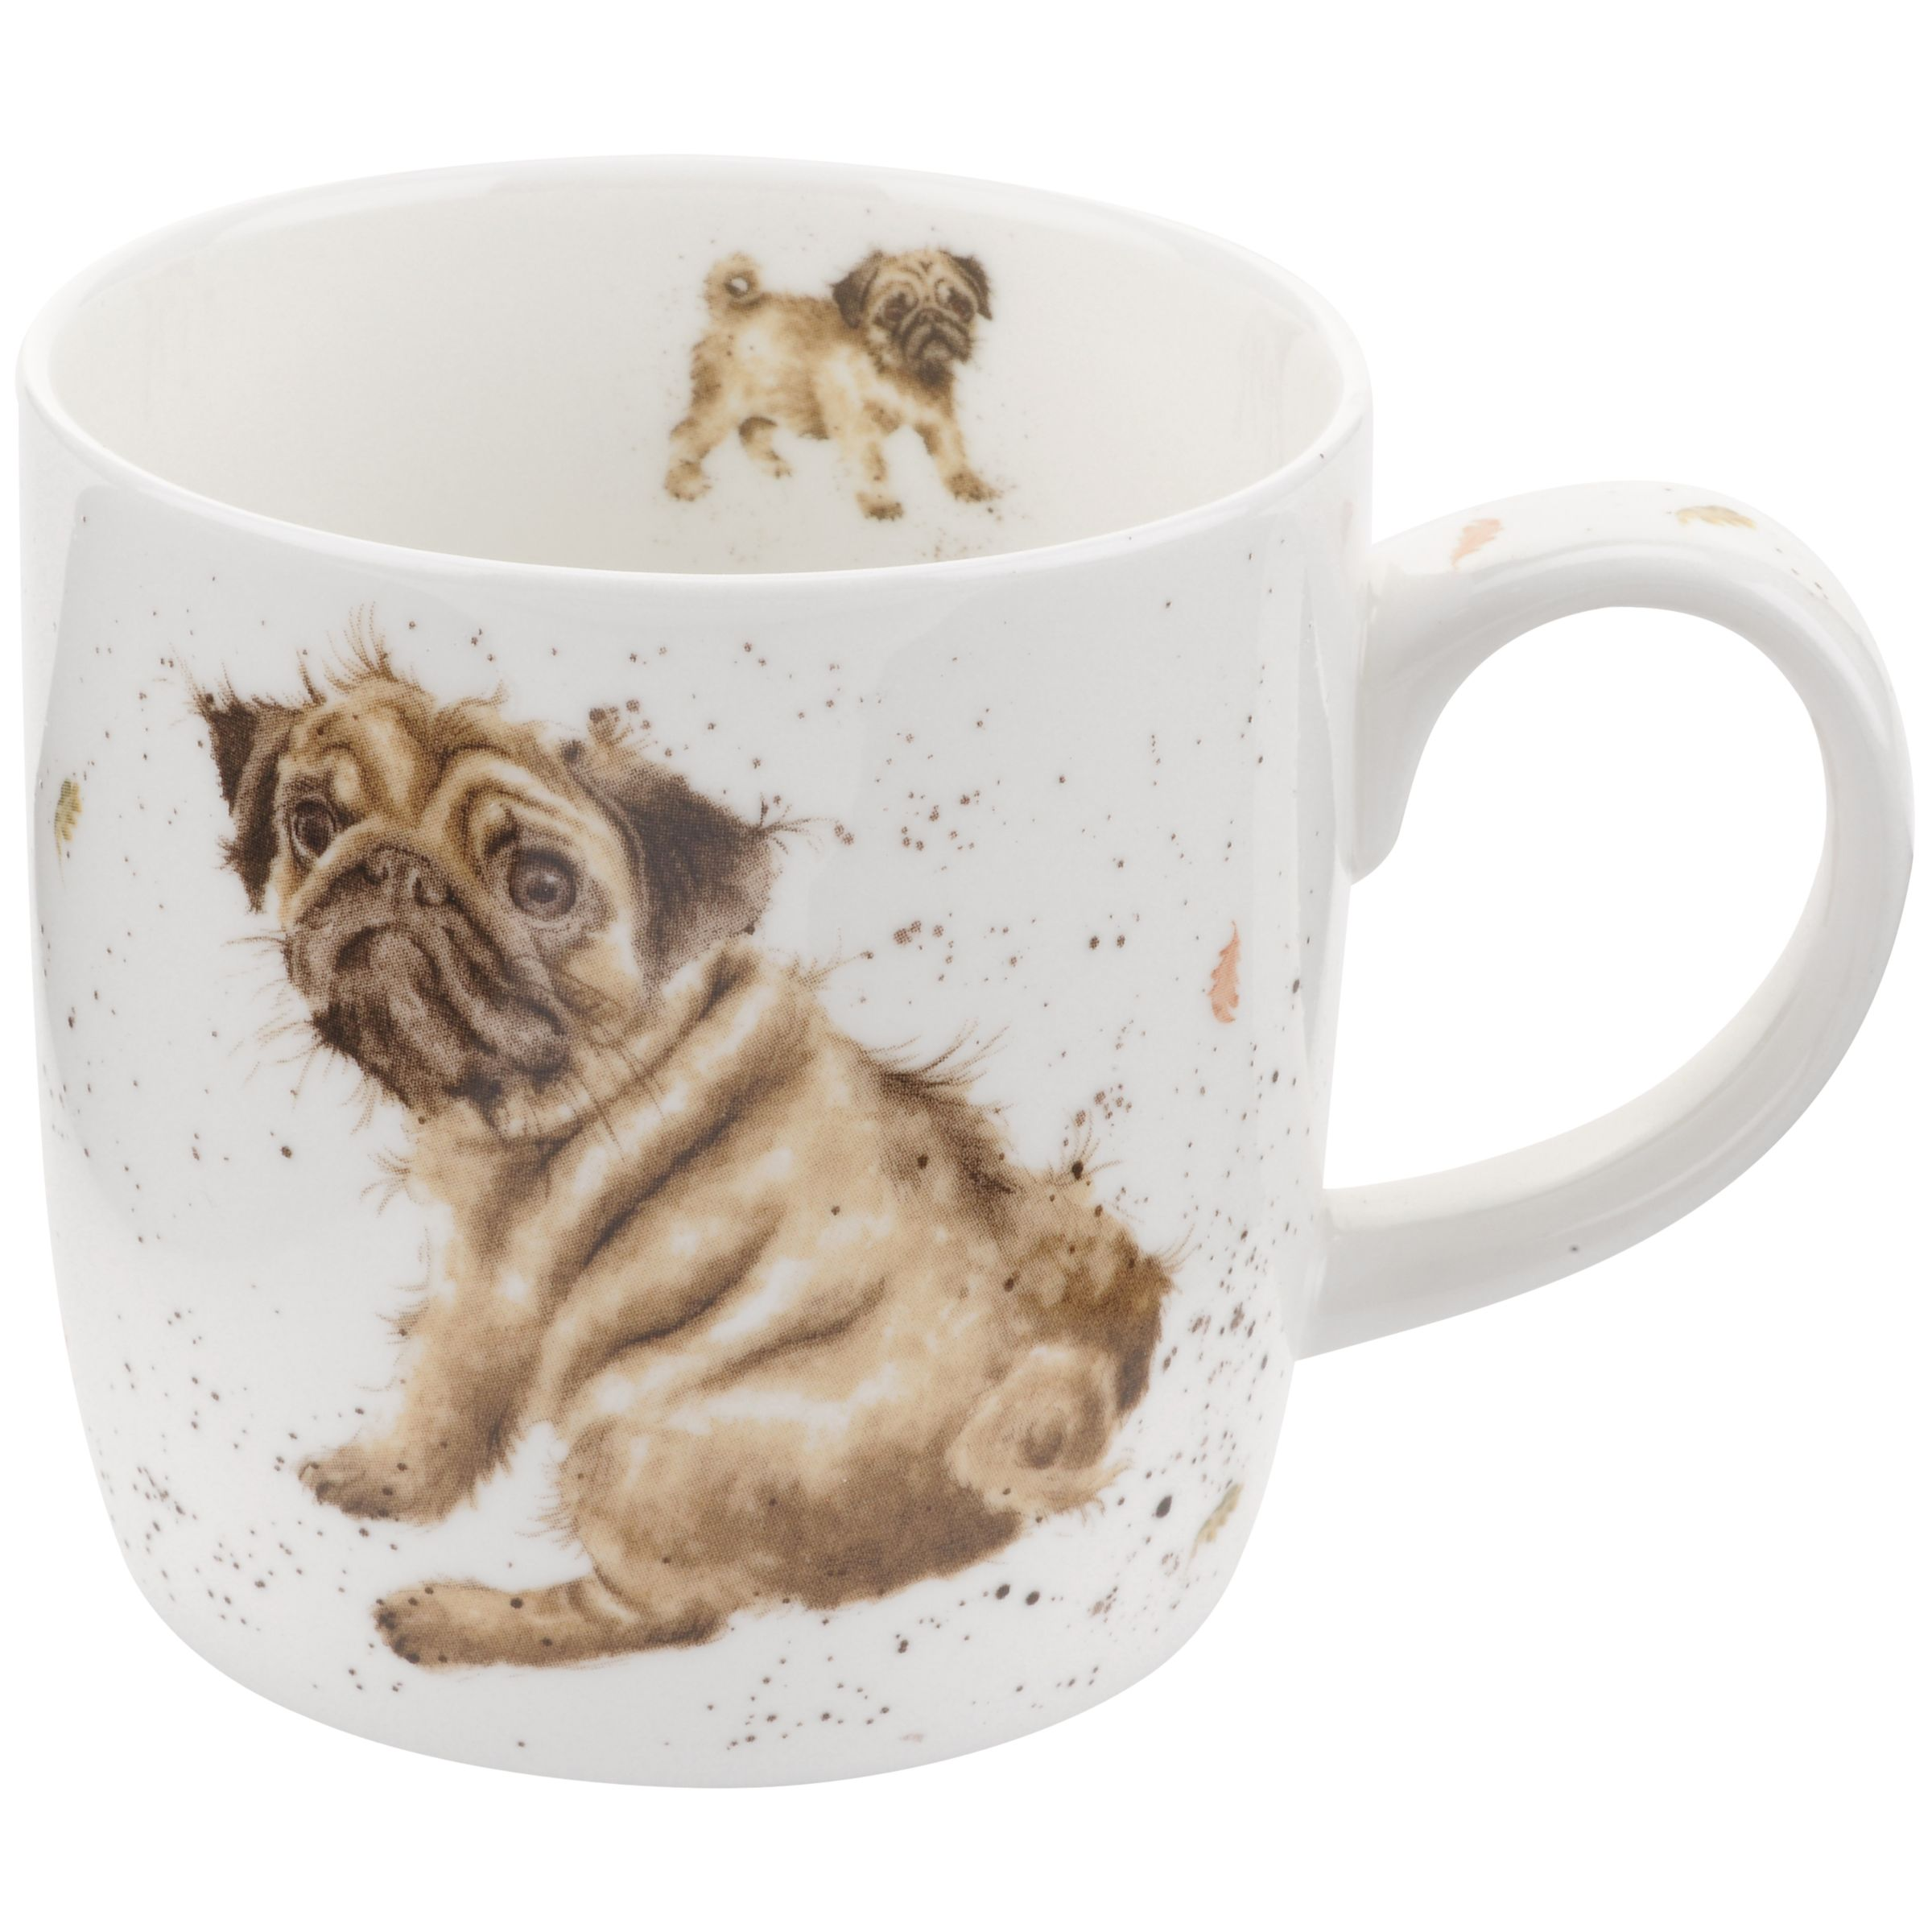 Royal Worcester Royal Worcester Wrendale Pug Mug